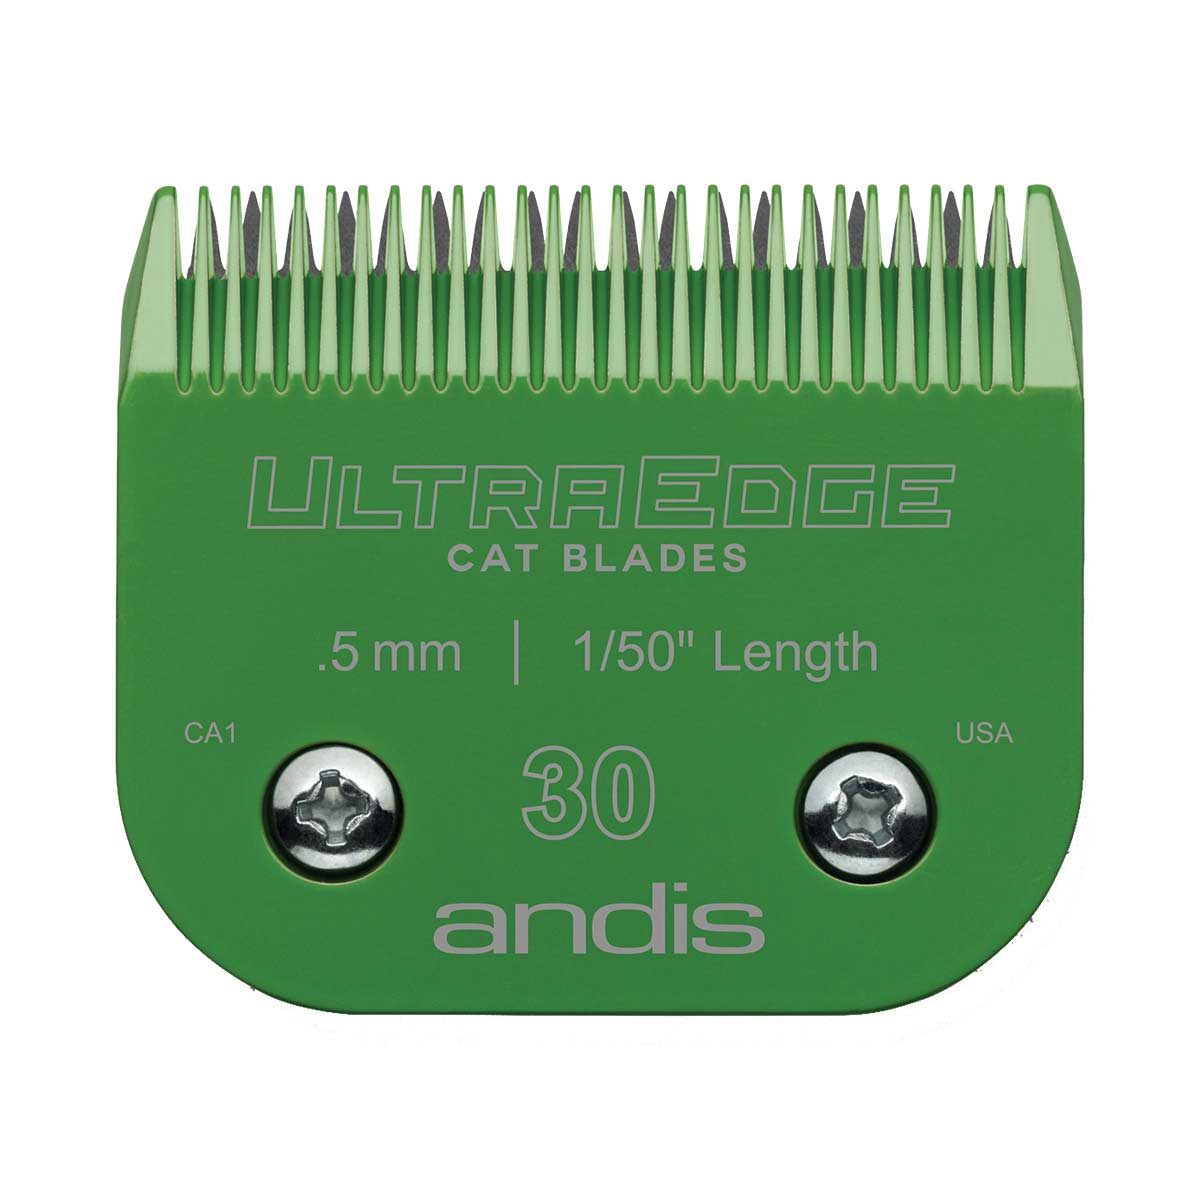 Andis Ultraedge #30 Cat Blade for Grooming at Ryan's Pet Supplies